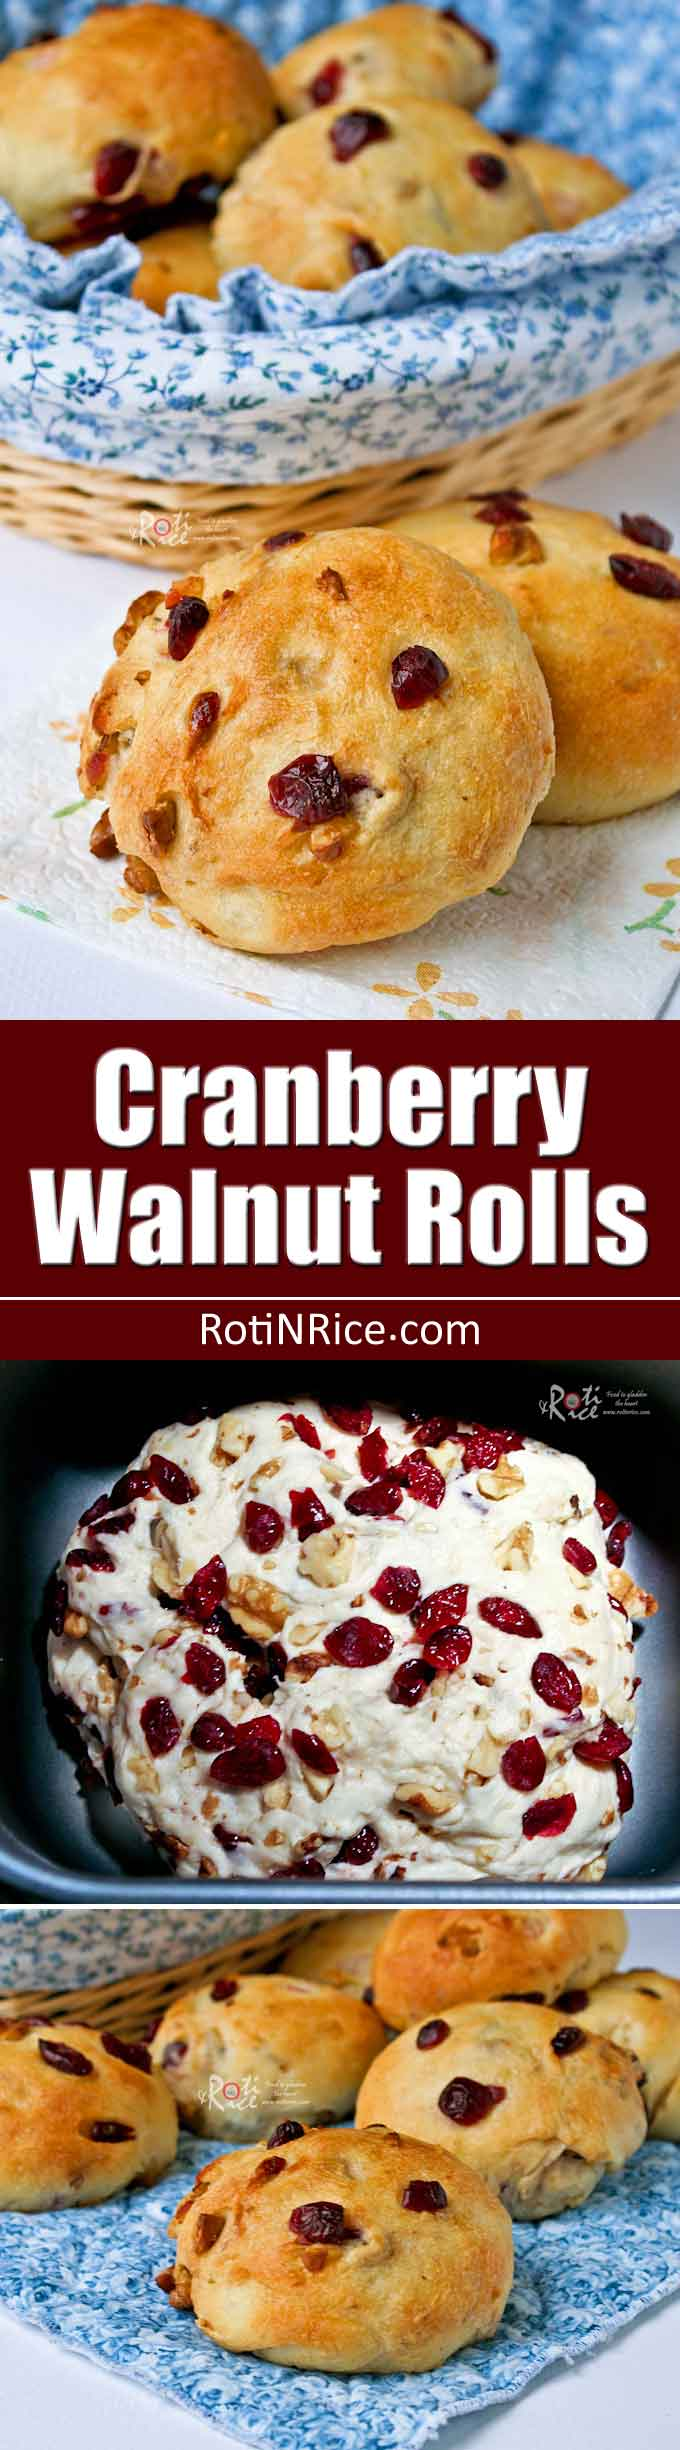 These tasty and beautiful Cranberry Walnut Rolls are delicious served warm with butter for breakfast or the holiday table. | RotiNRice.com